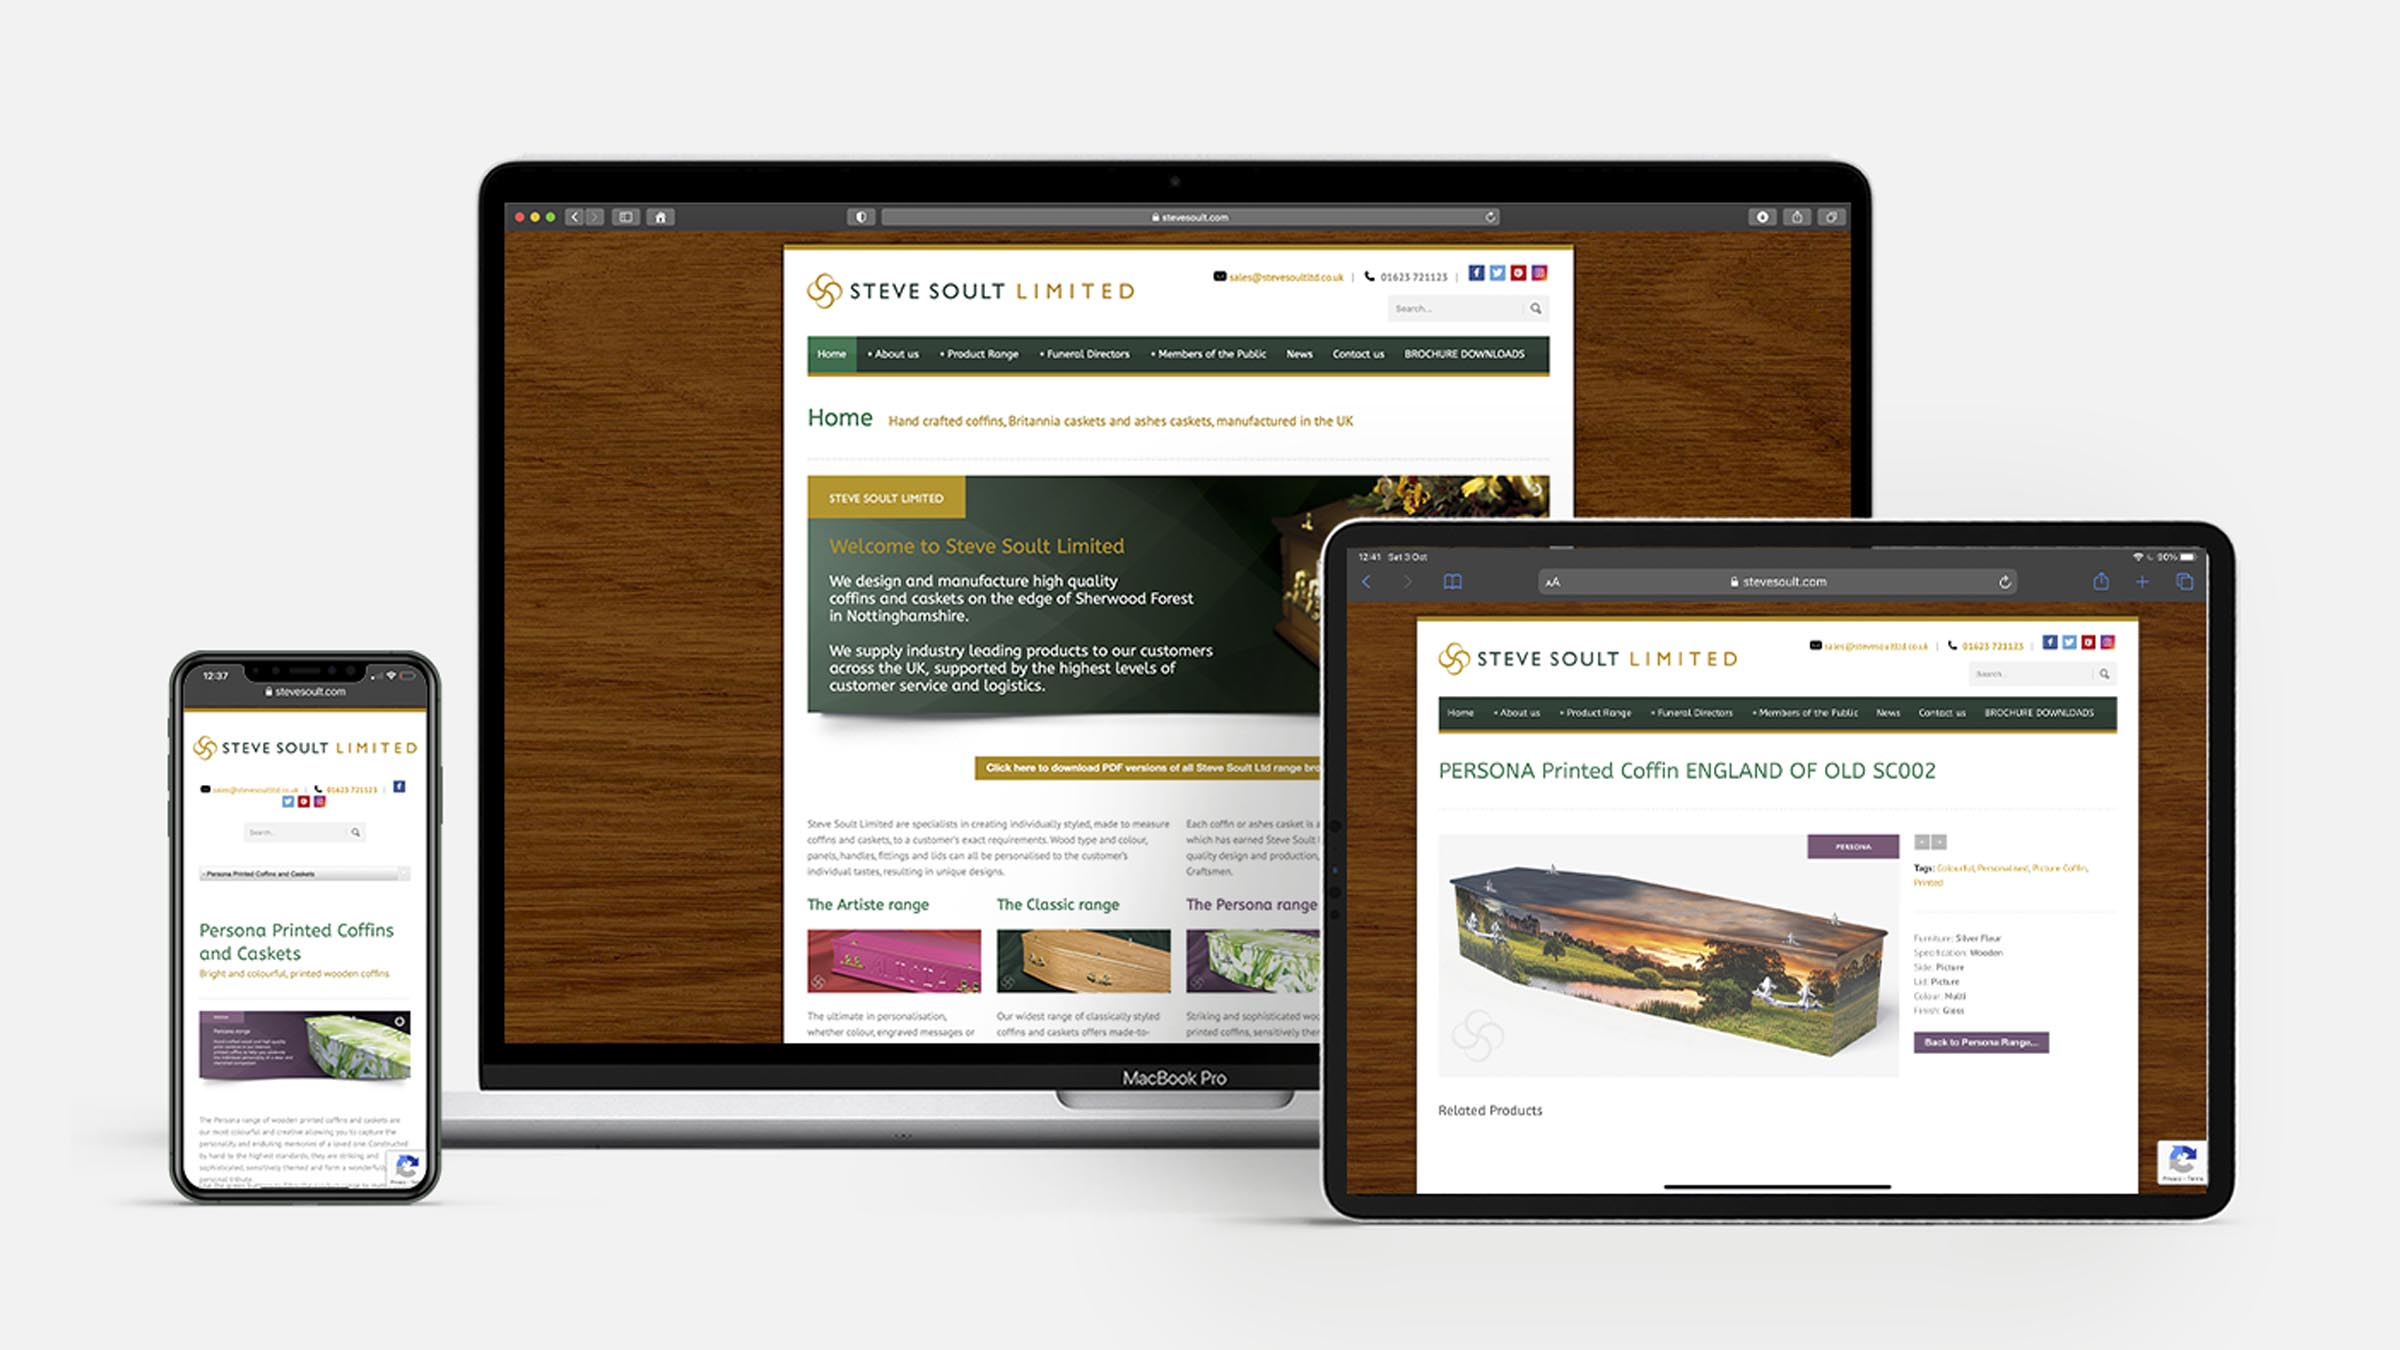 Steve Soult Limited responsive website